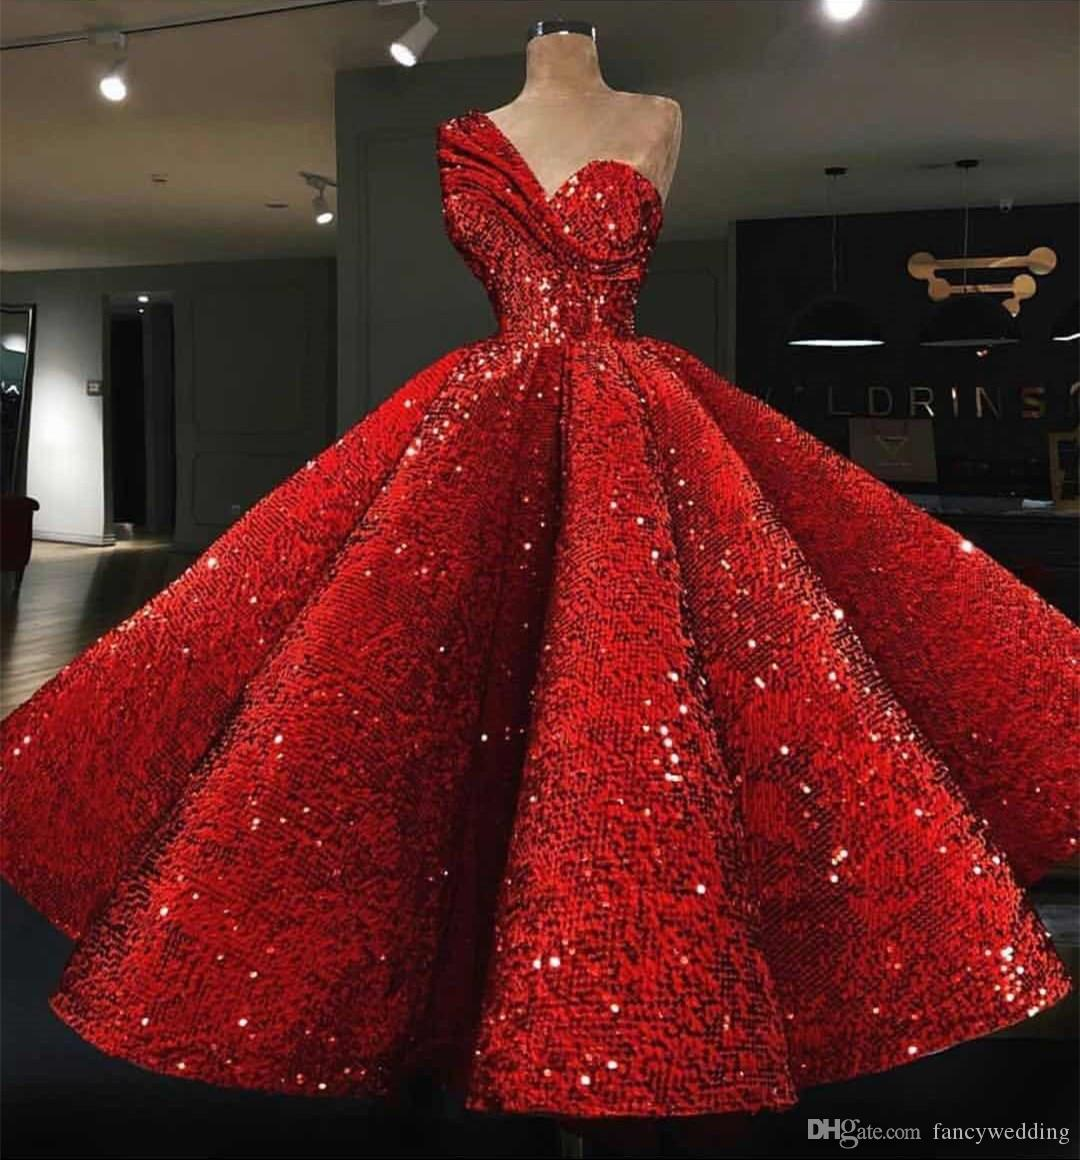 New Coming Red Luxurious One Shoulder Ball Gown Ruffle Sexy Beautiful Custom Made Evening Dresses Prom Dress